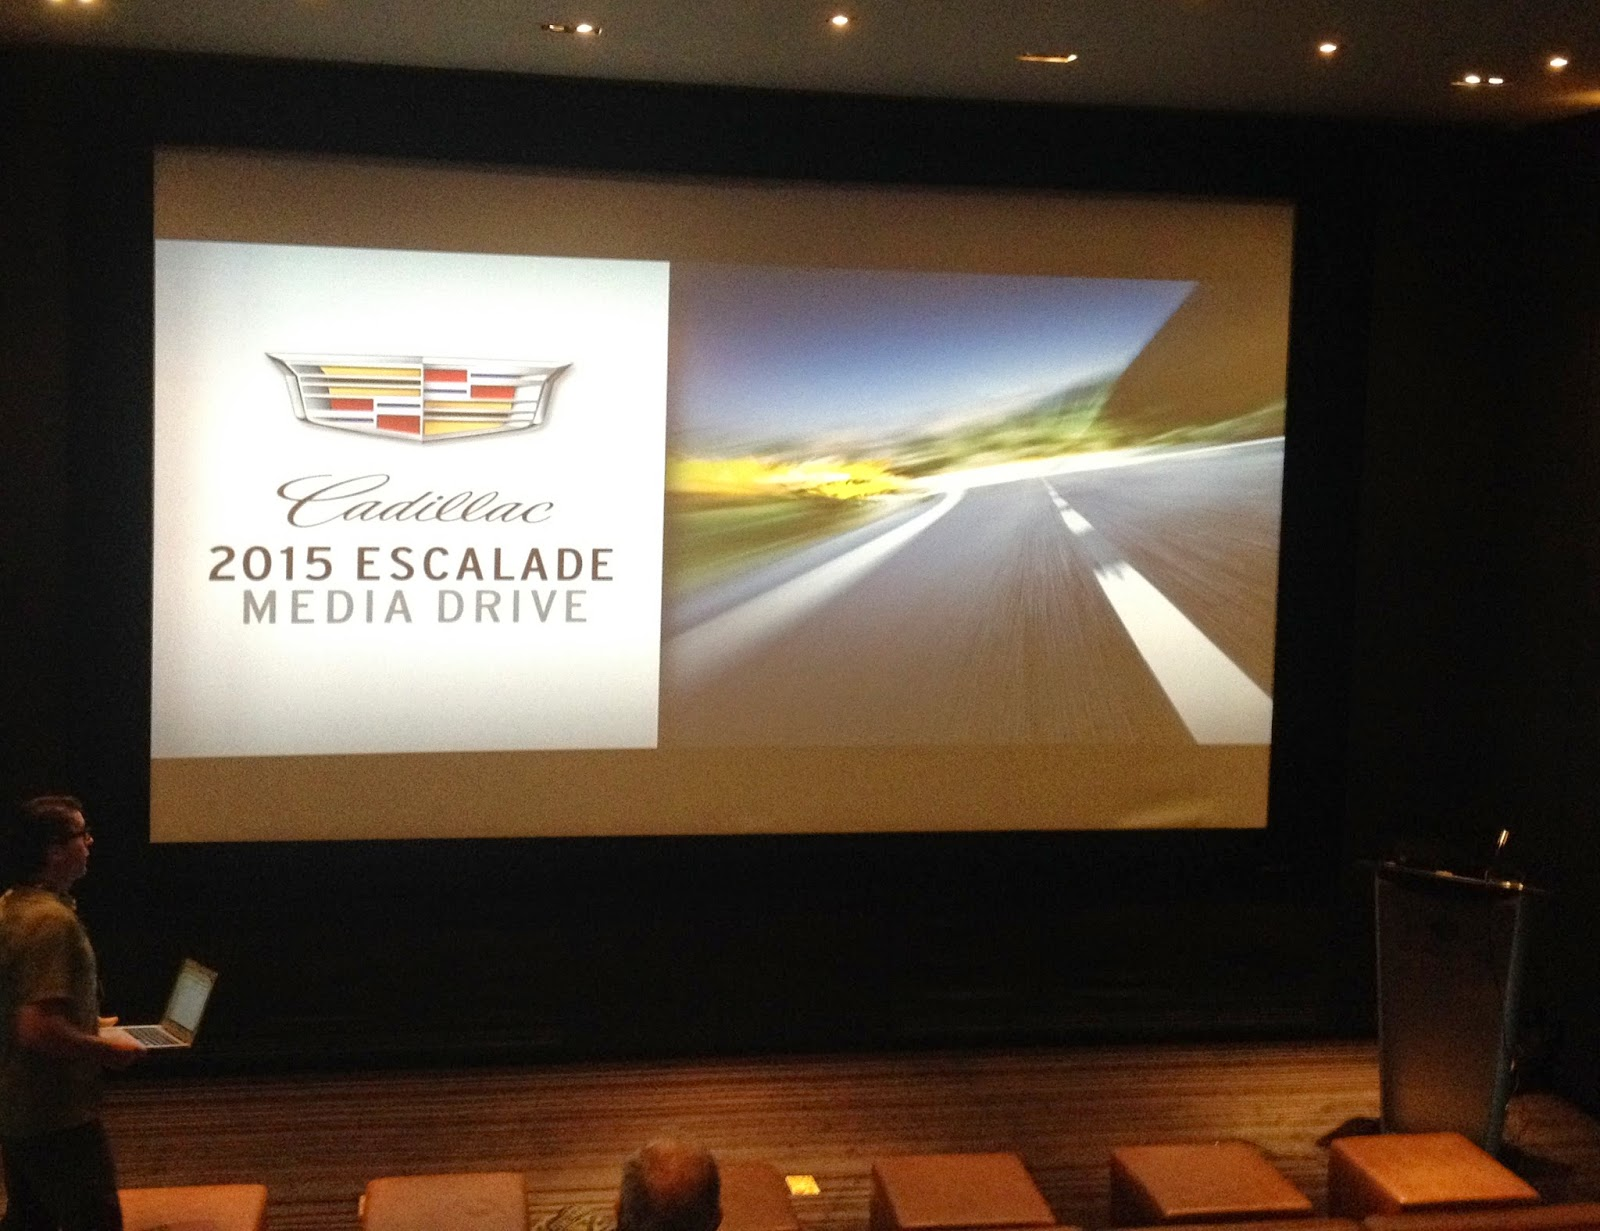 Presentation at The Hazelton for the Cadillac 2015 Escalade Media Drive